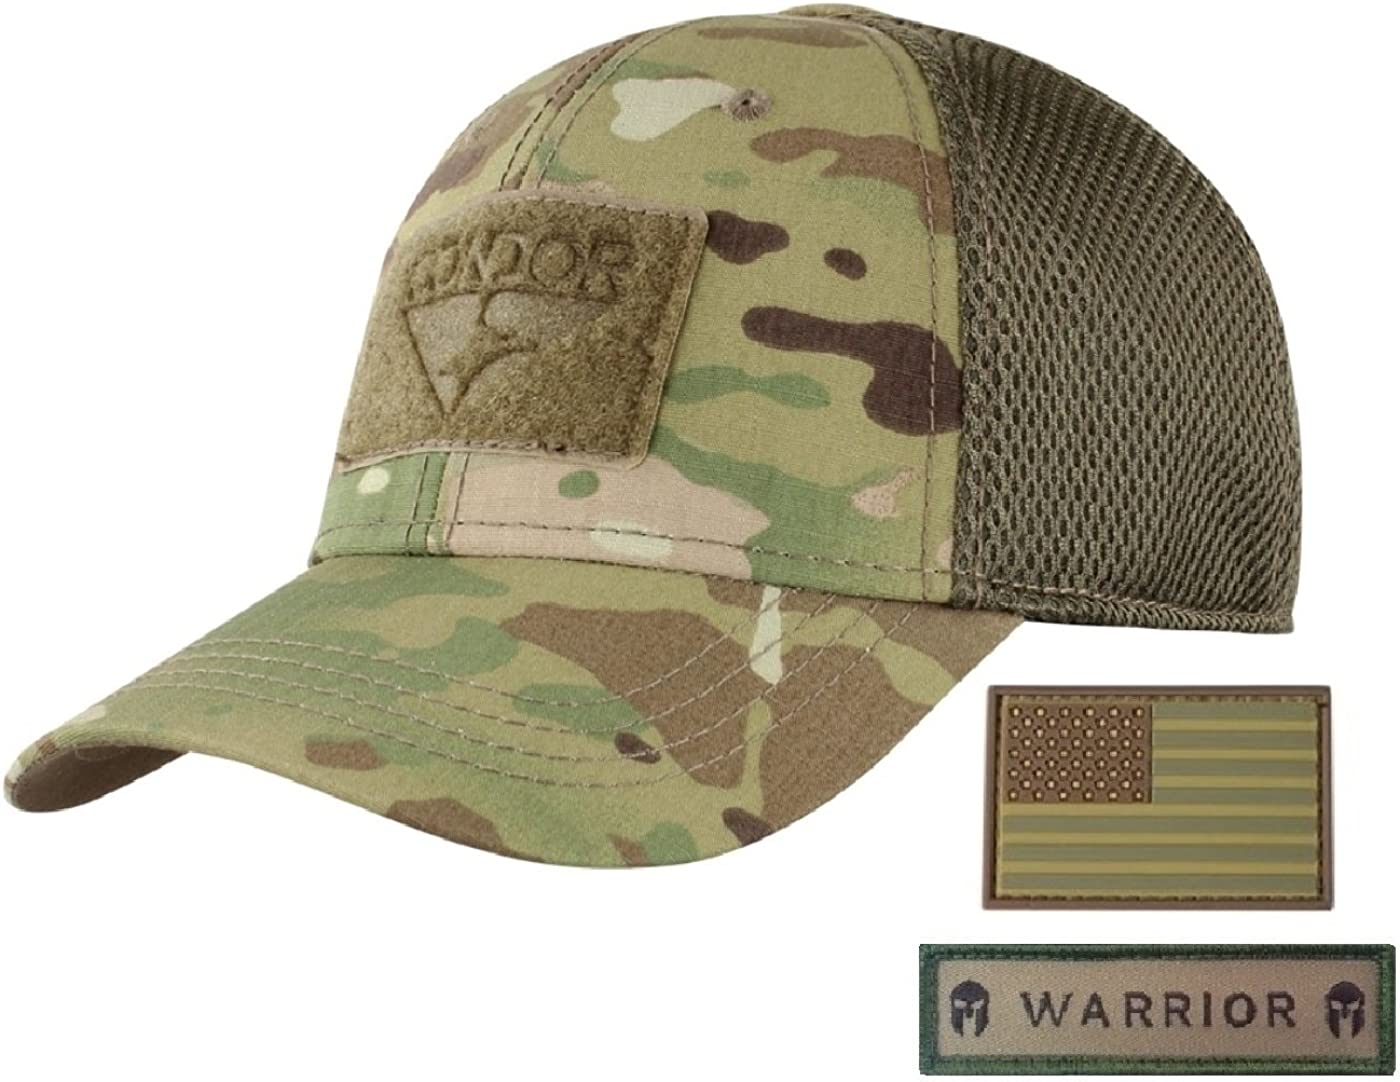 Condor Flex Mesh Cap (Multicam) + PVC Flag & Warrior Patch, Highly Breathable Fitted Tactical Operator Hat